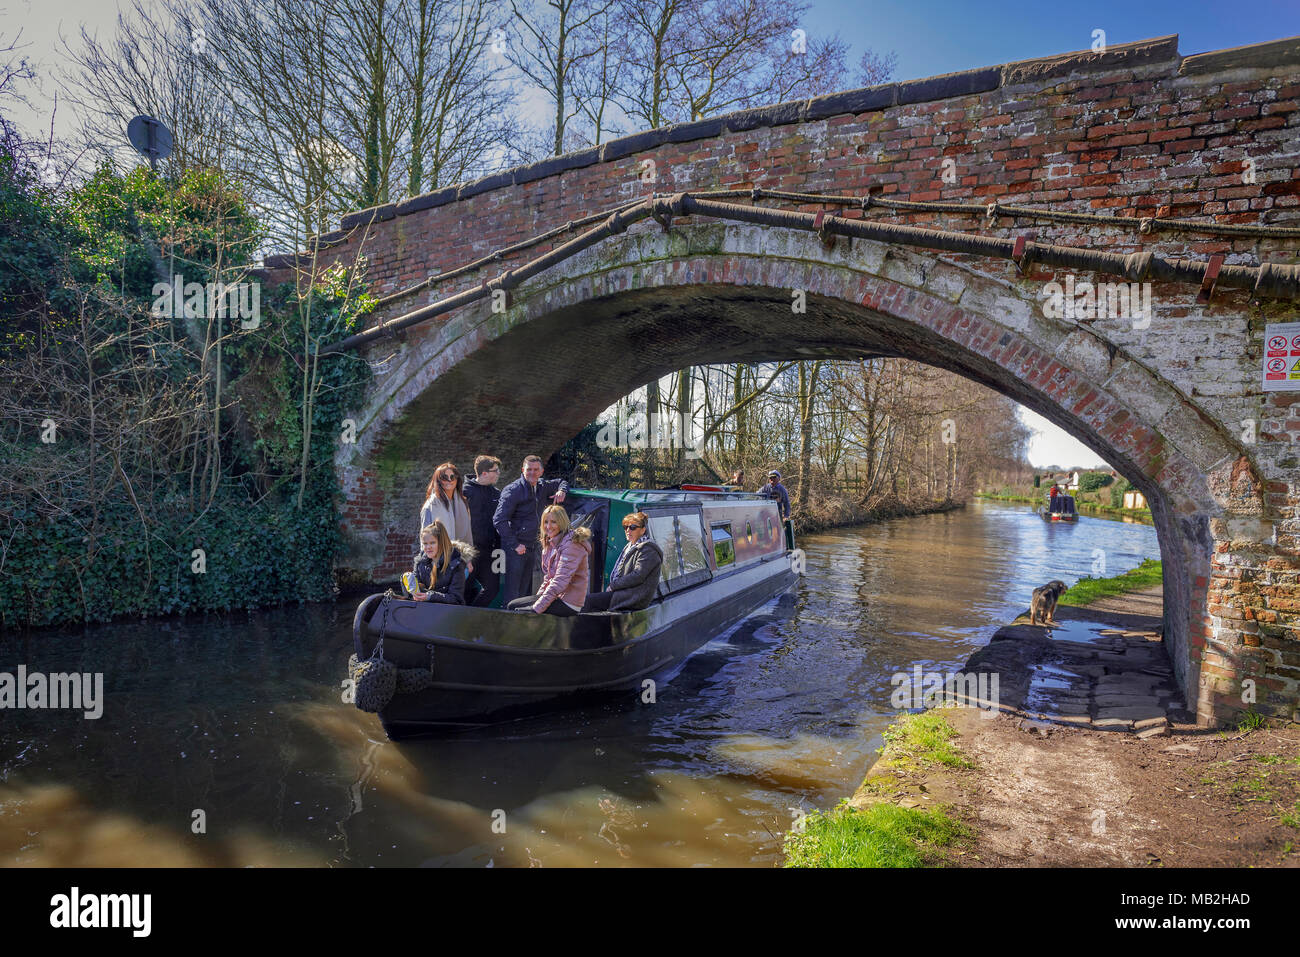 Canal narrowboat at Red Lane bridge on Bridgewater canal in Walton Warrington. - Stock Image